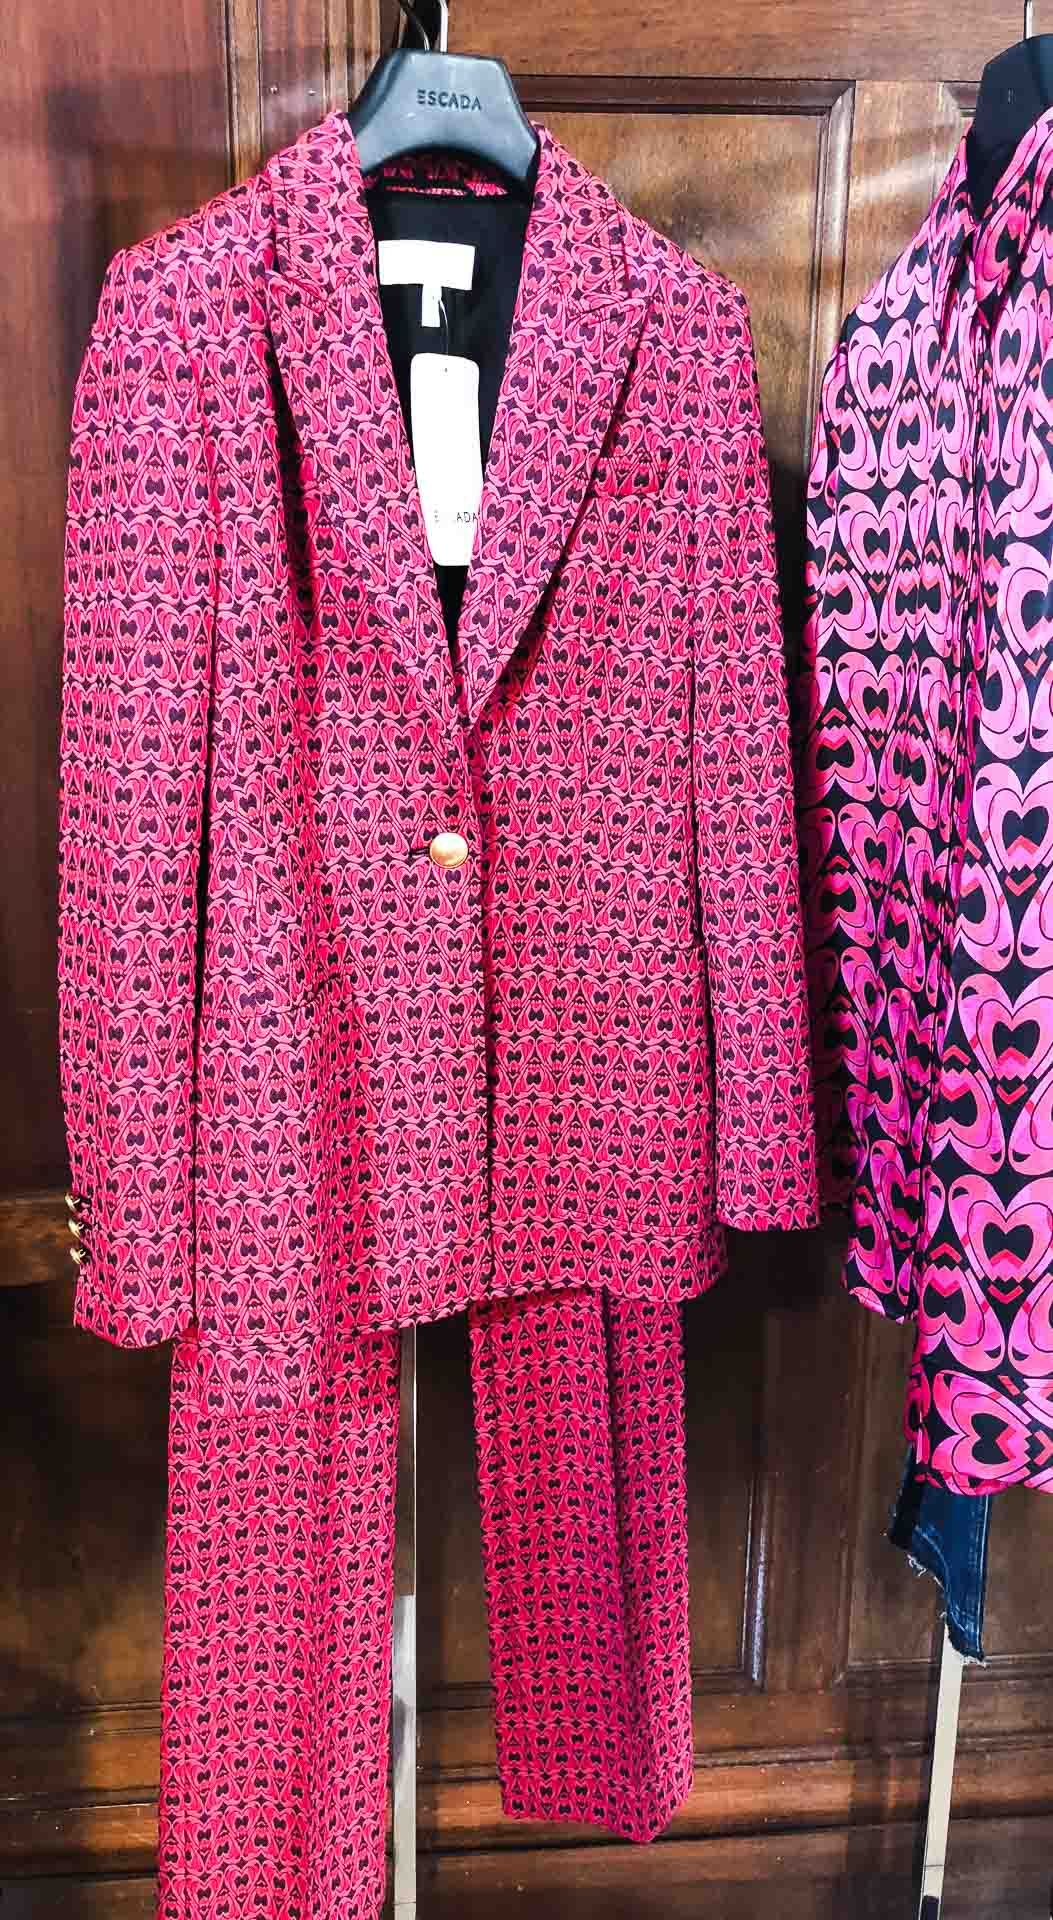 Brunette from Wall Street Escada heart print suit